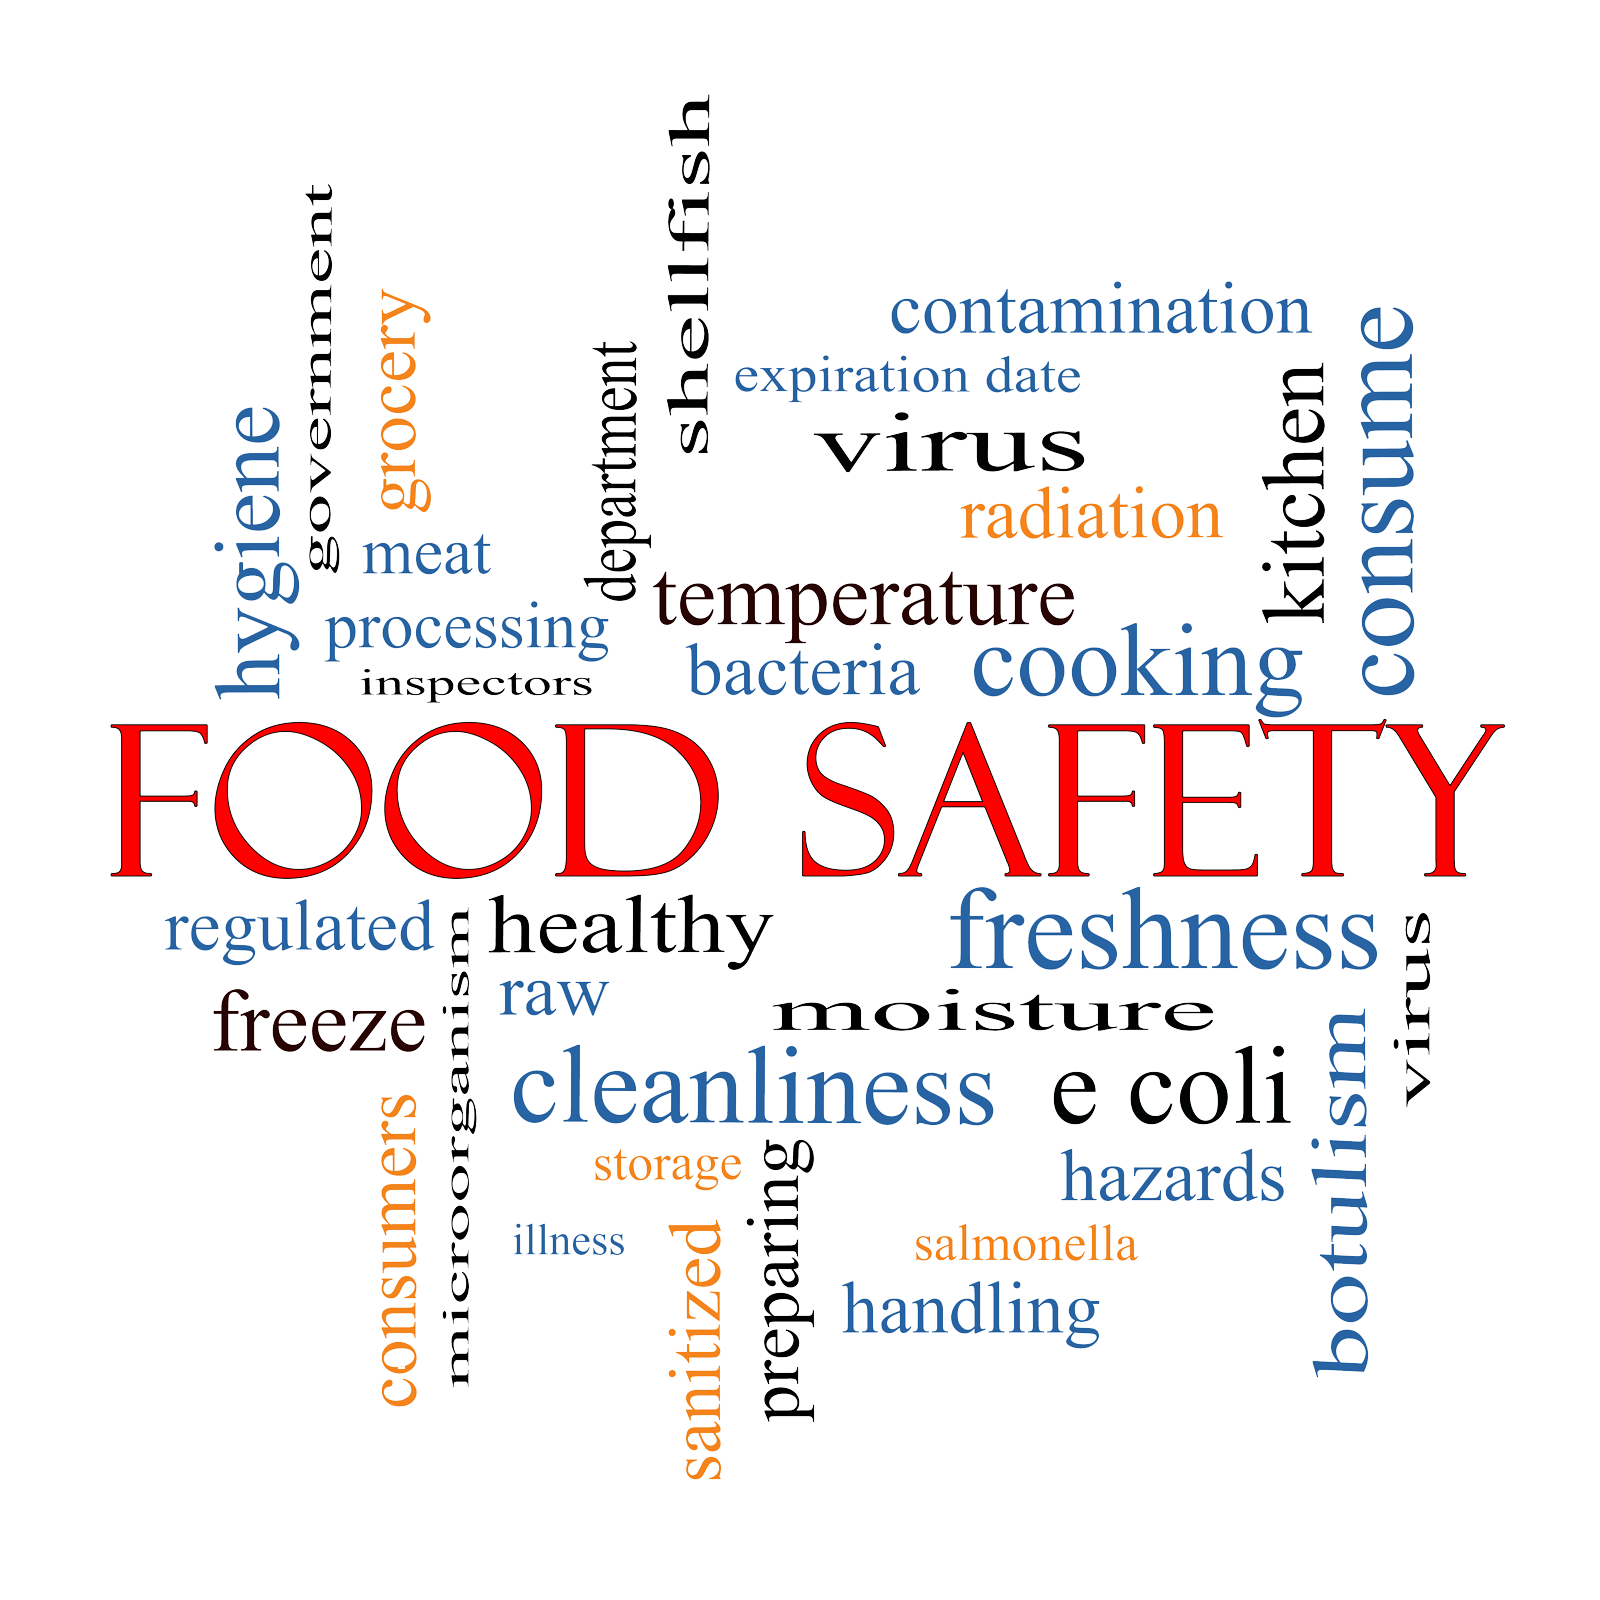 Food Safety and Hygiene Τraining - Qualiment - Υπηρεσίες ... Food Safety And Hygiene